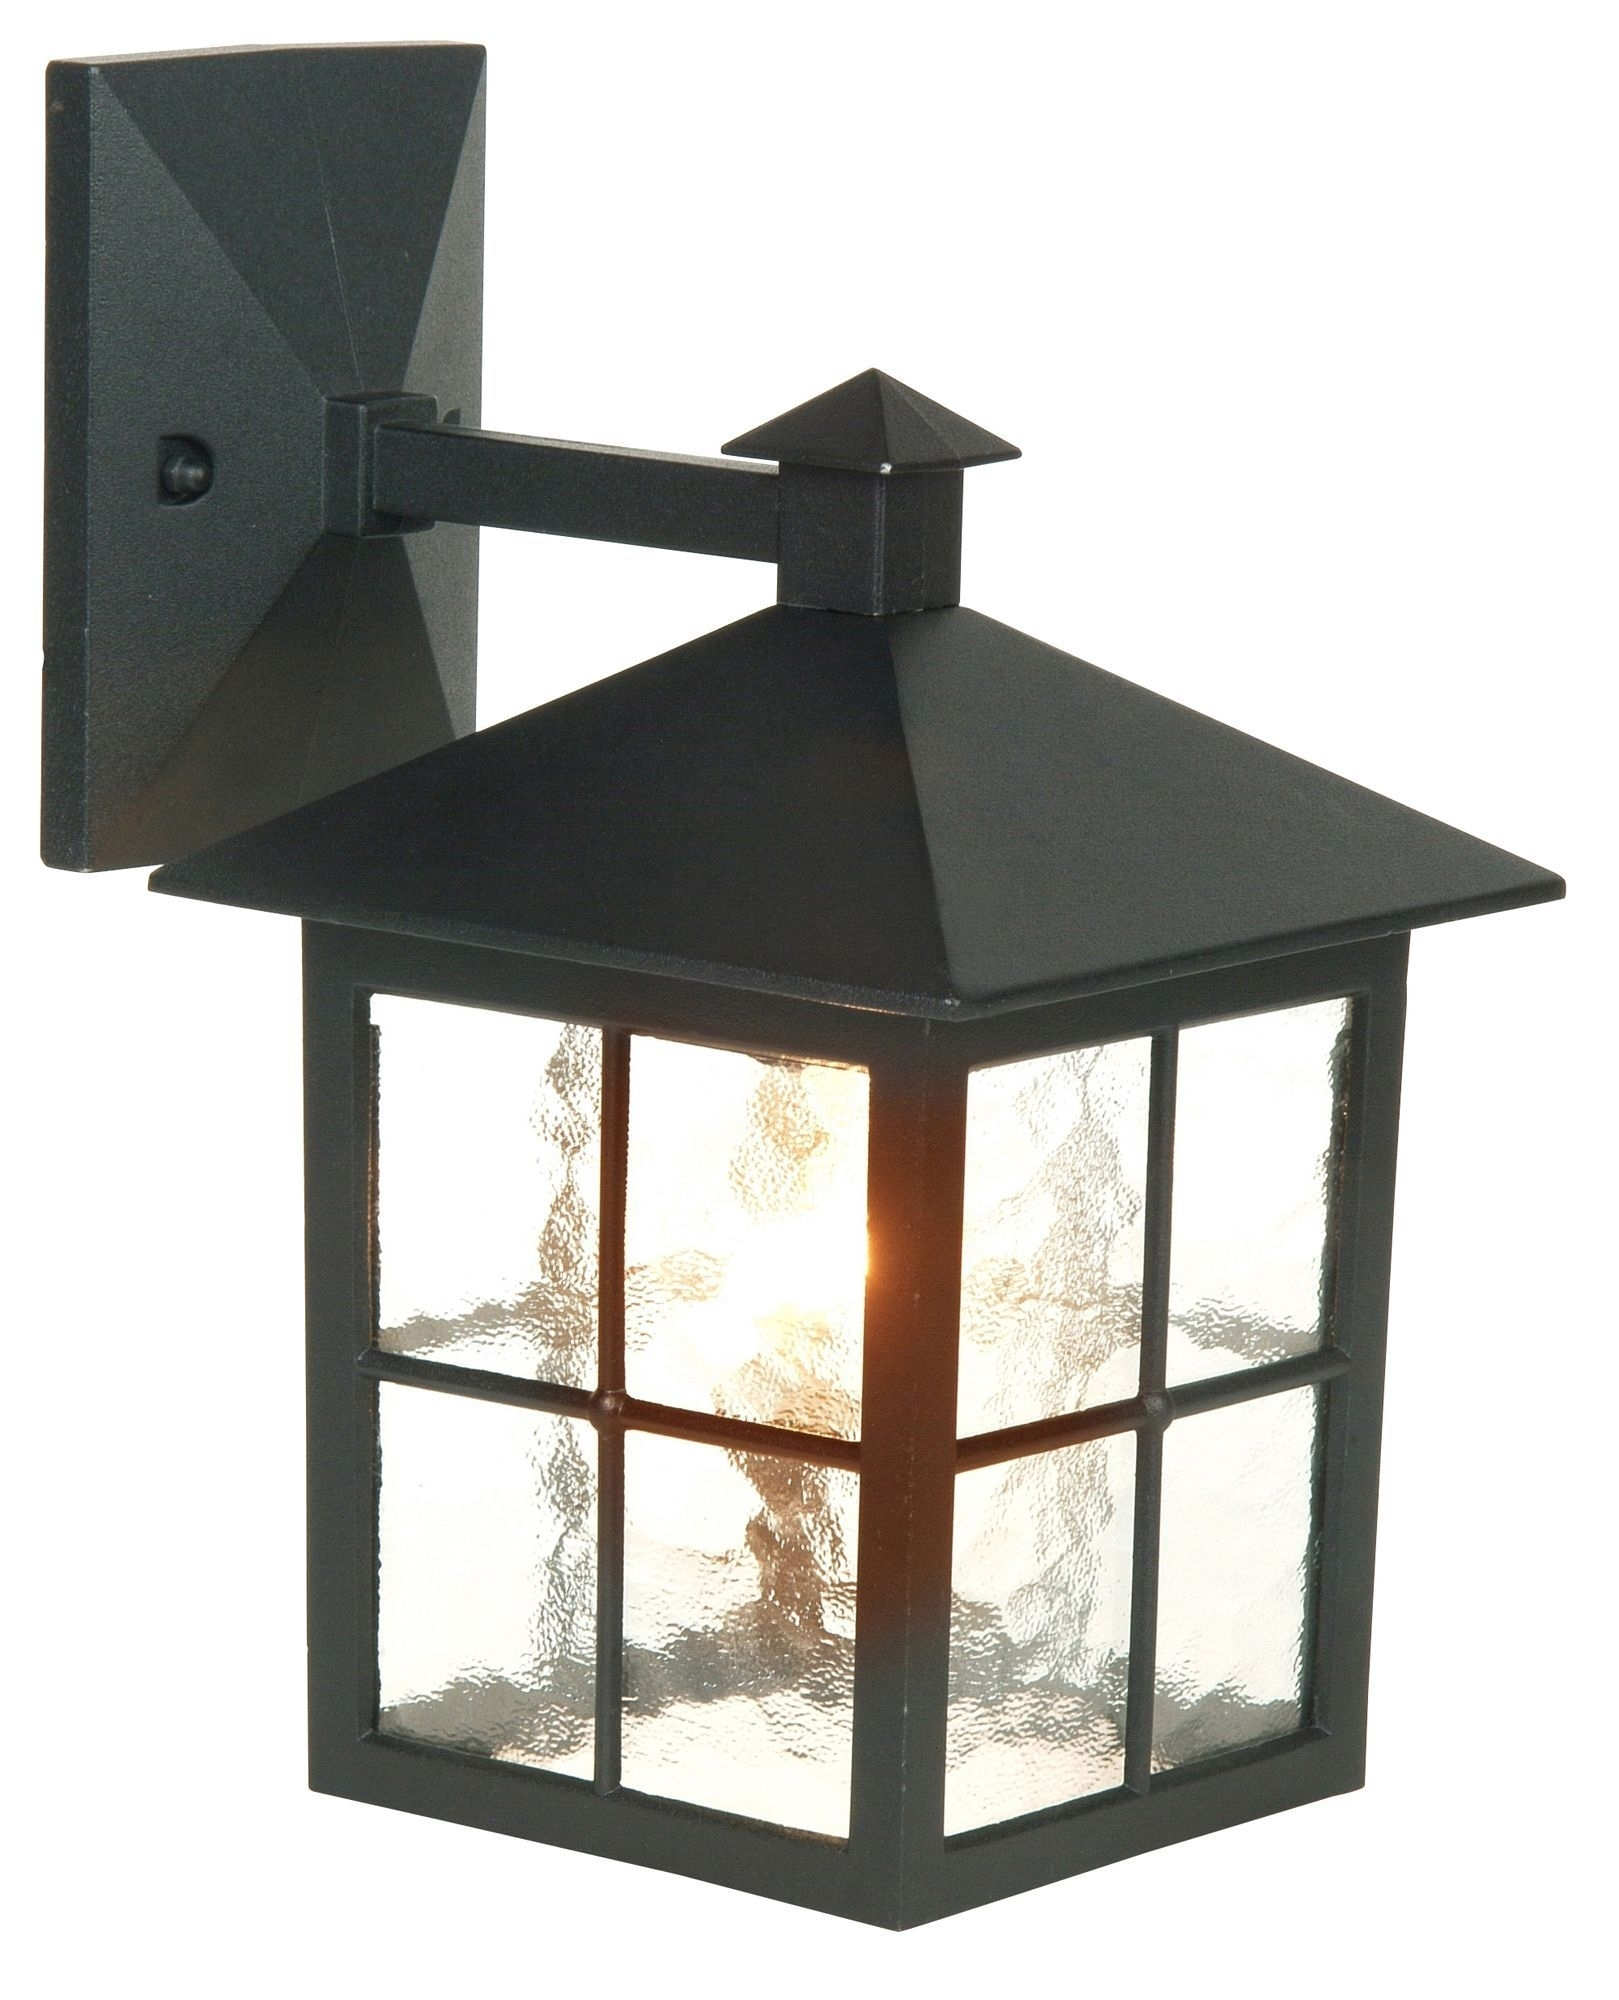 Maine Black Mains Powered External Wall Lantern | Window, Lights And with Outdoor Mains Lanterns (Image 9 of 20)